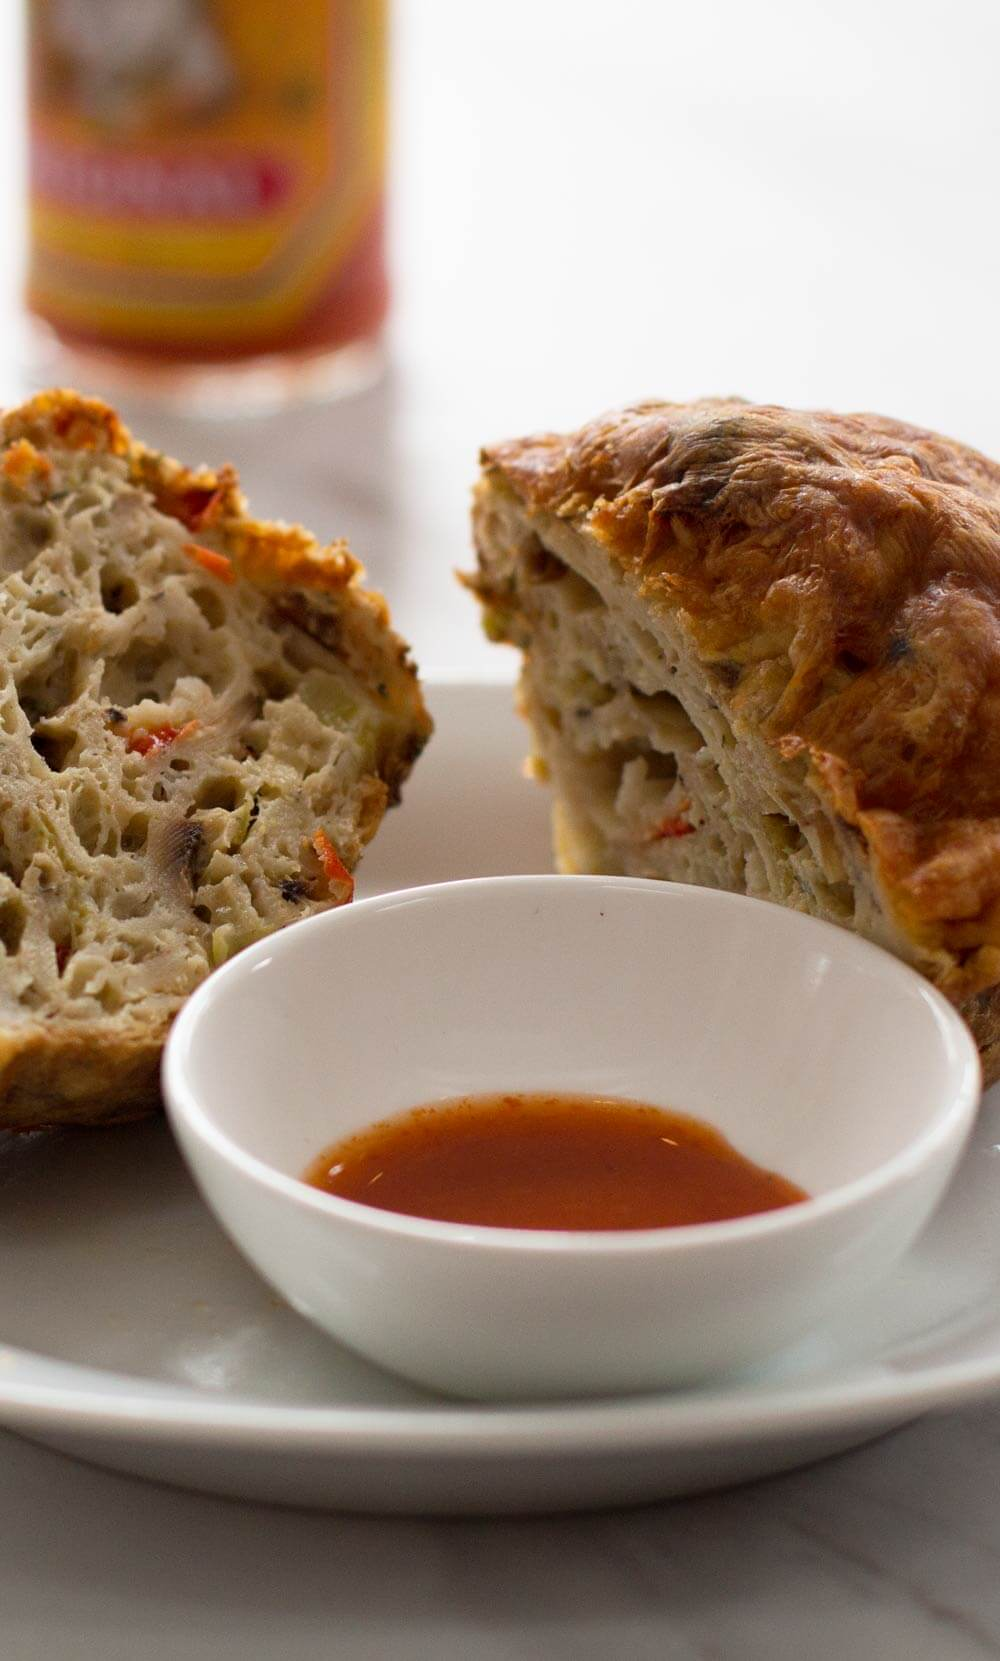 Savory Passover matzo muffins with hot sauce